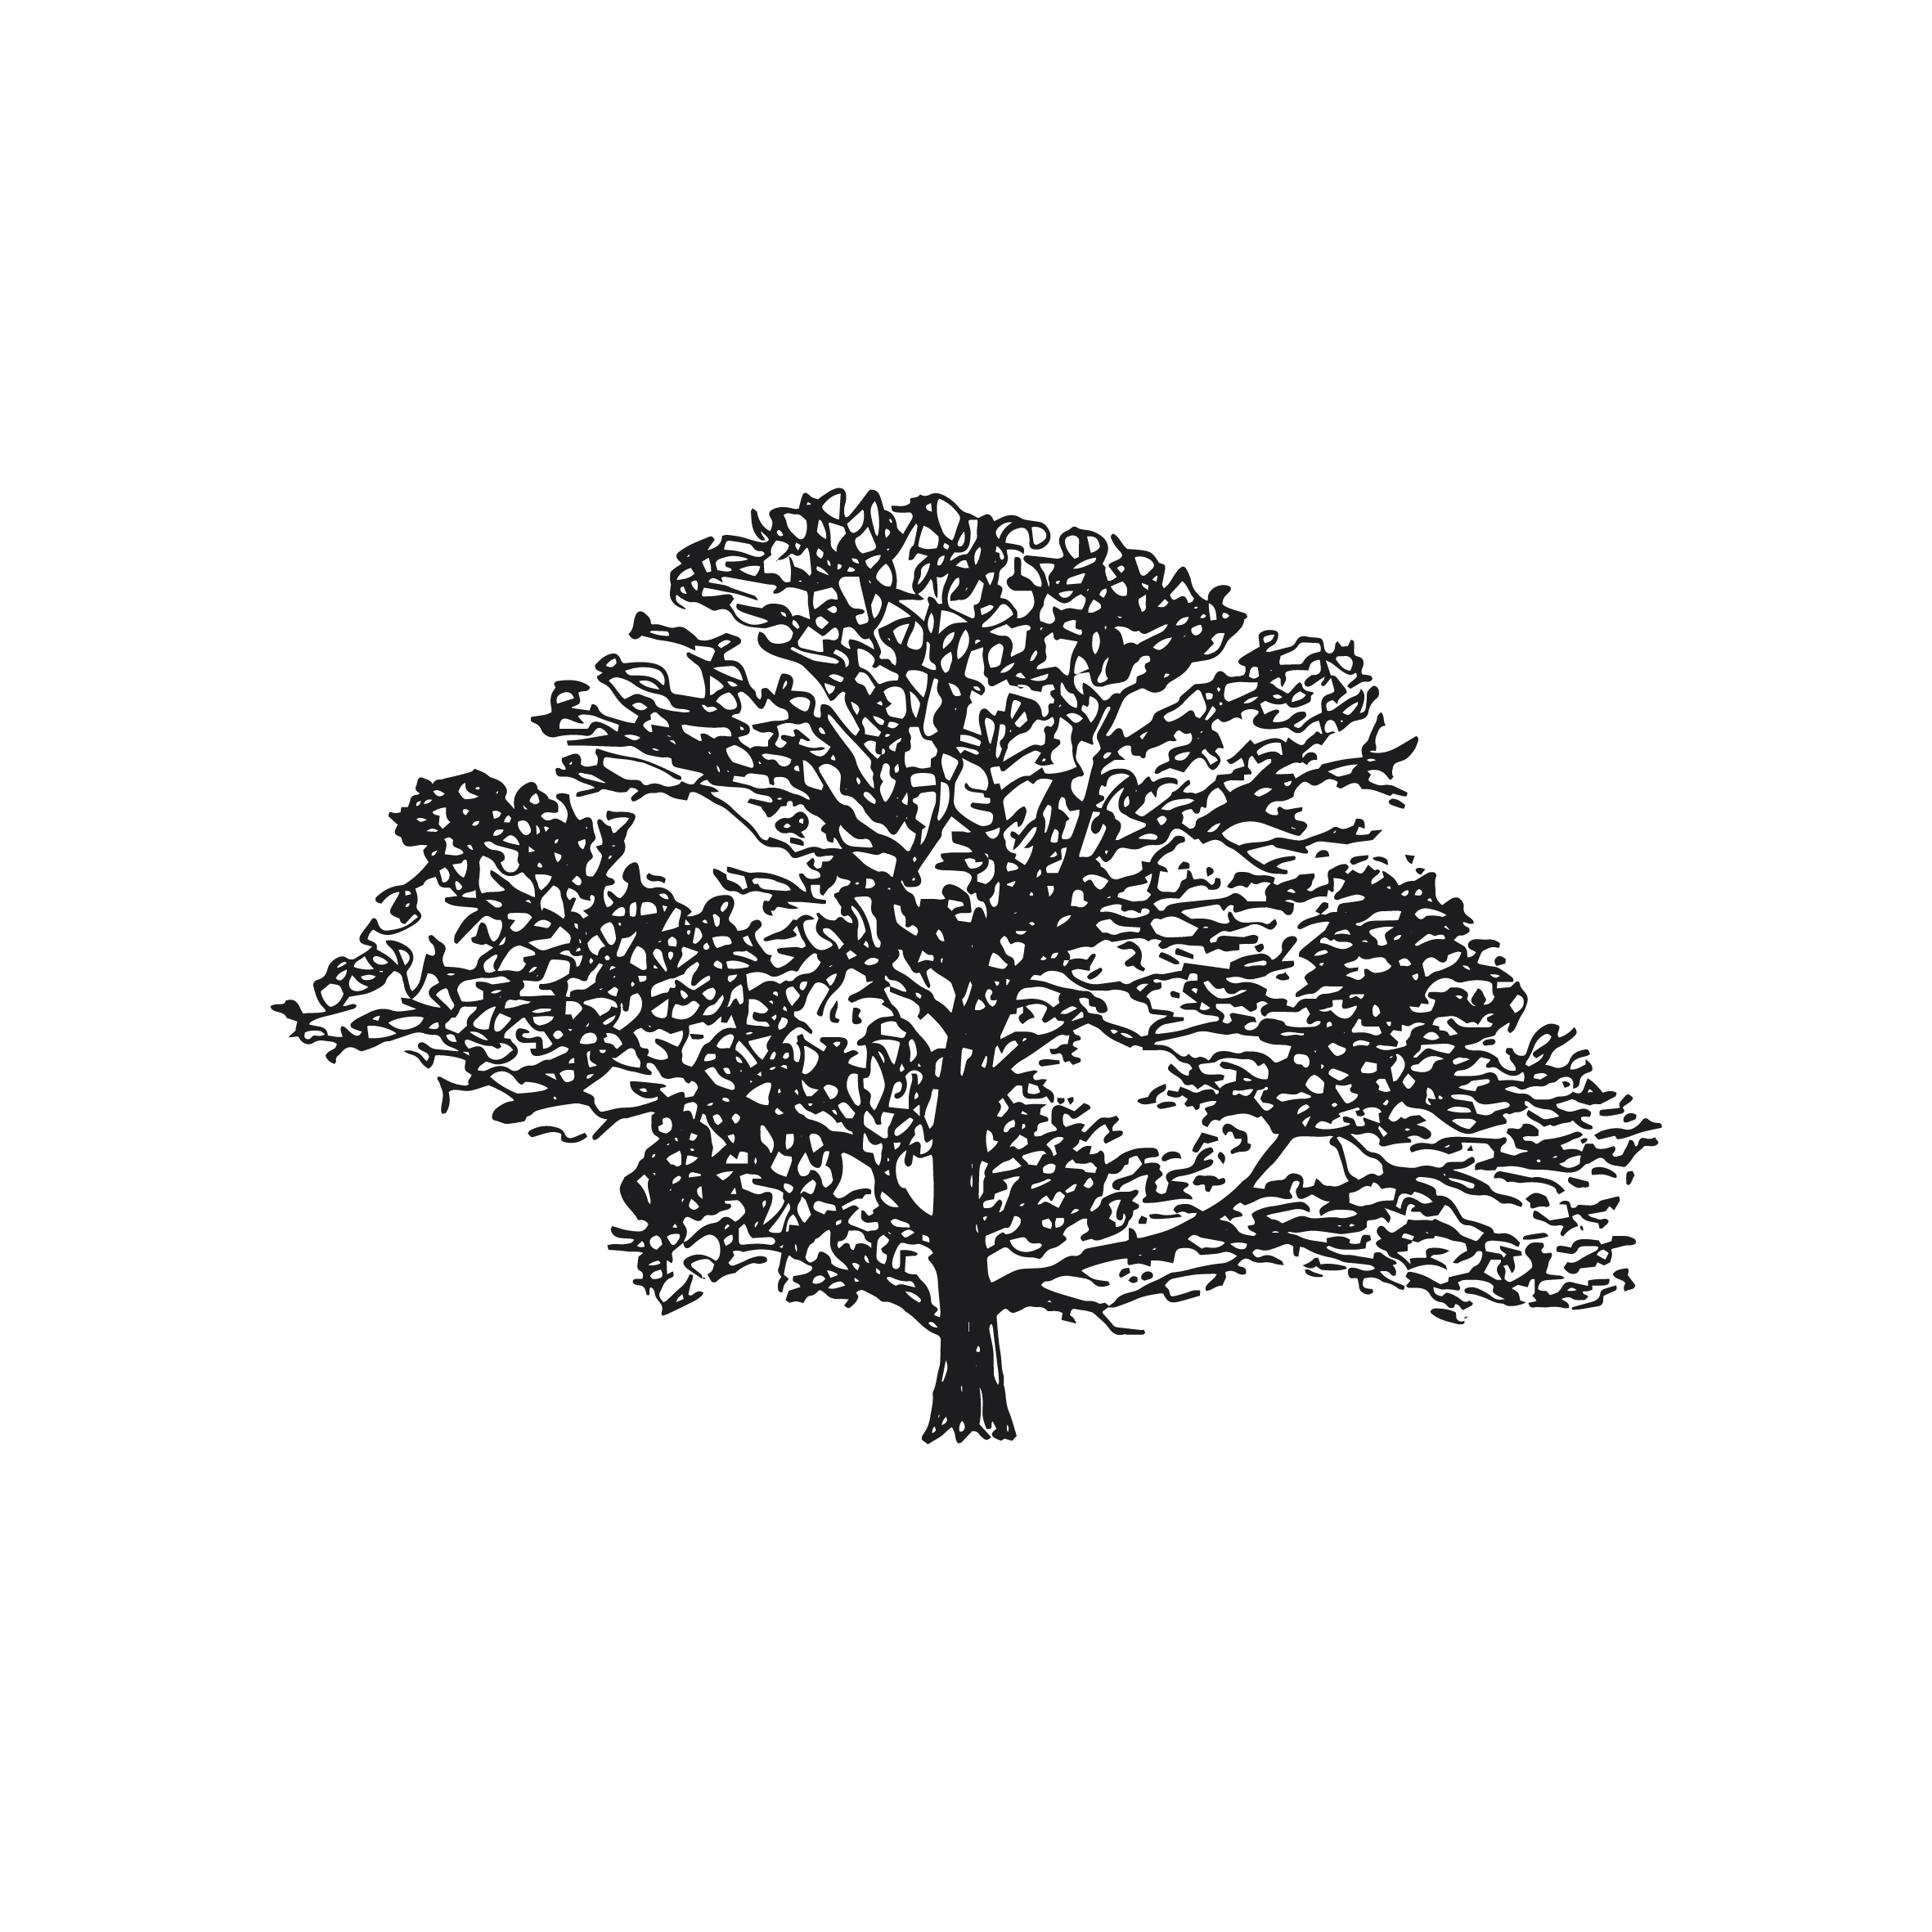 Down to Earth tree surgeons Sevenoaks, logo design and brand identity by Ditto Creative, branding agency Kent